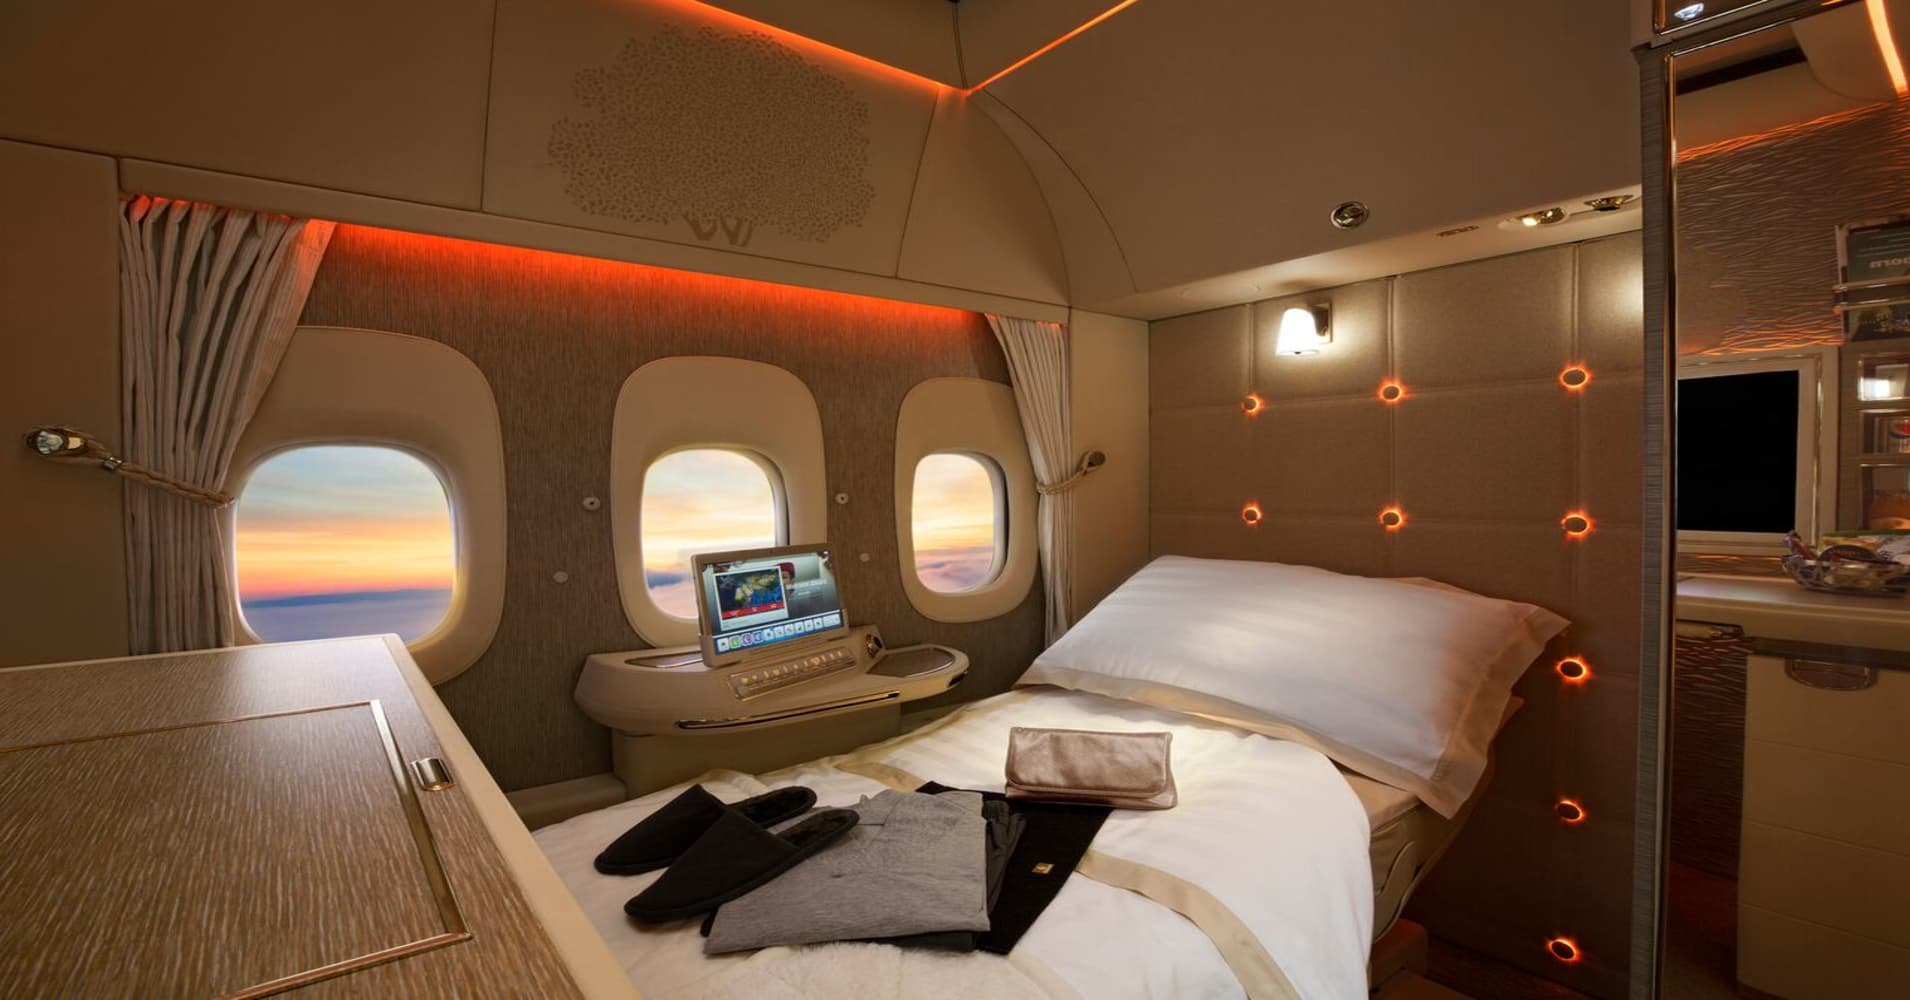 The main difference between business class Arab airlines from European 24